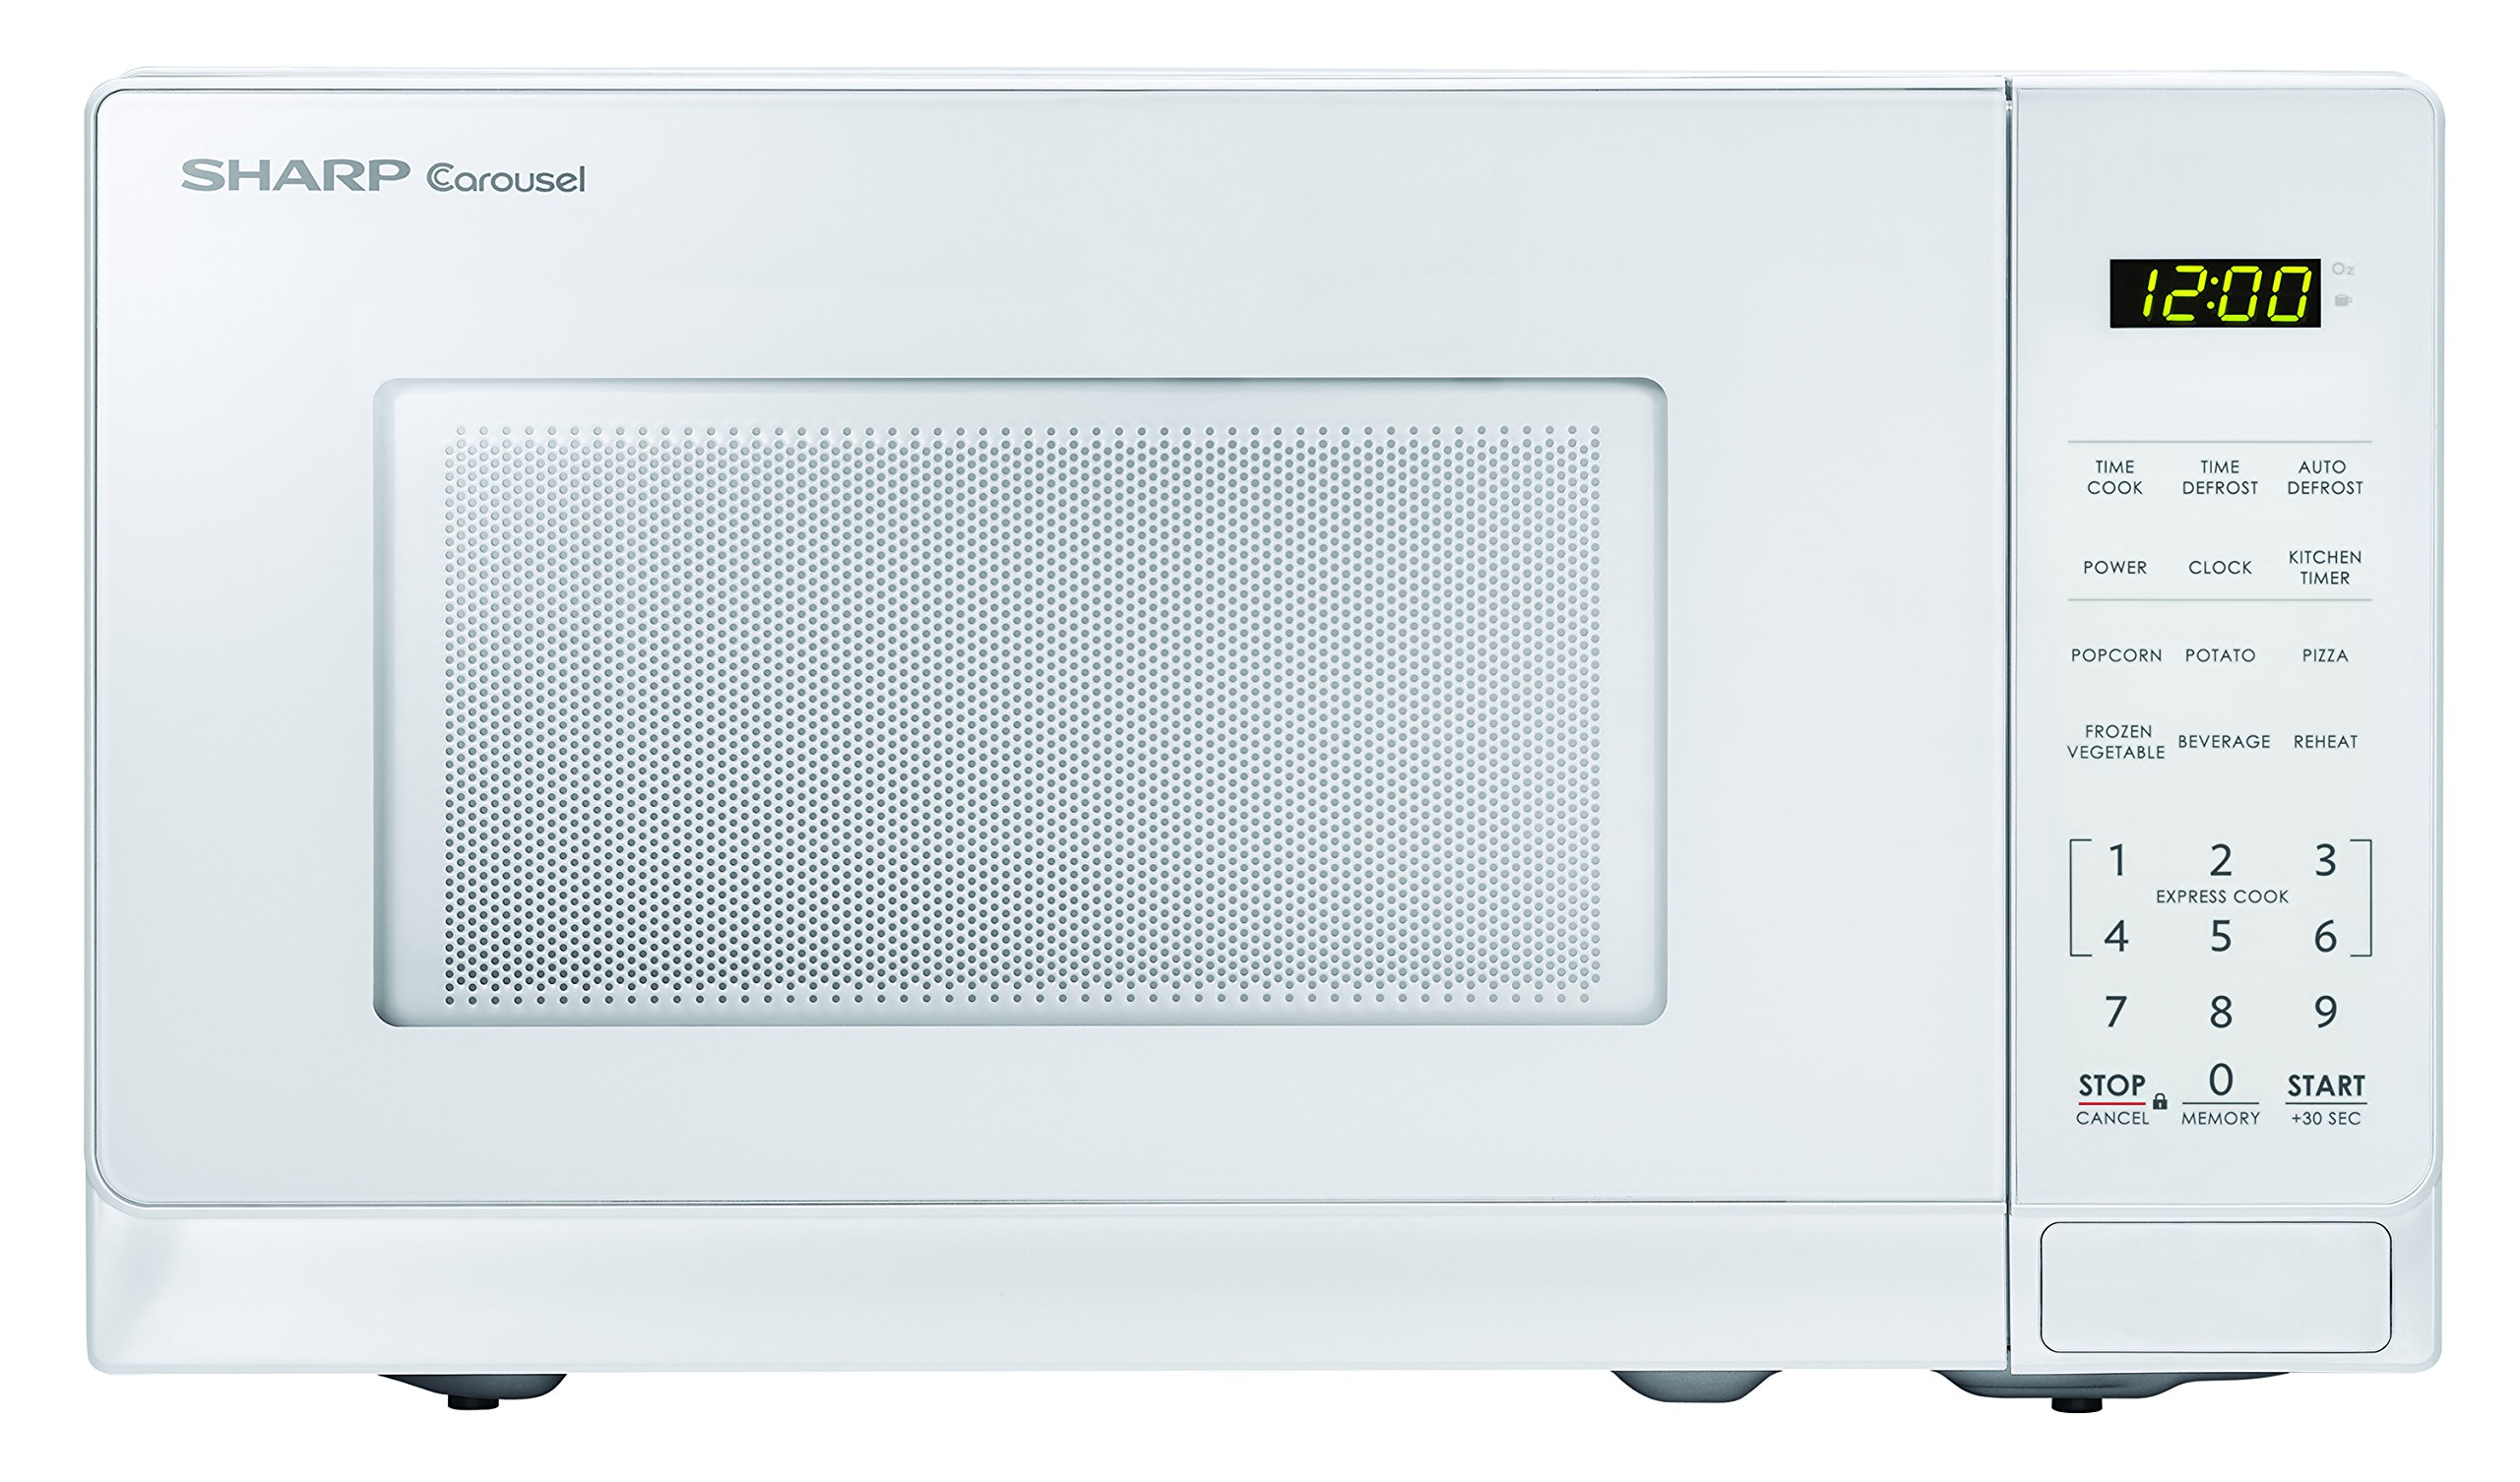 Sharp Microwaves ZSMC0710BW Sharp 700W Countertop Microwave Oven, 0.7 Cubic Foot, White by Sharp Microwaves